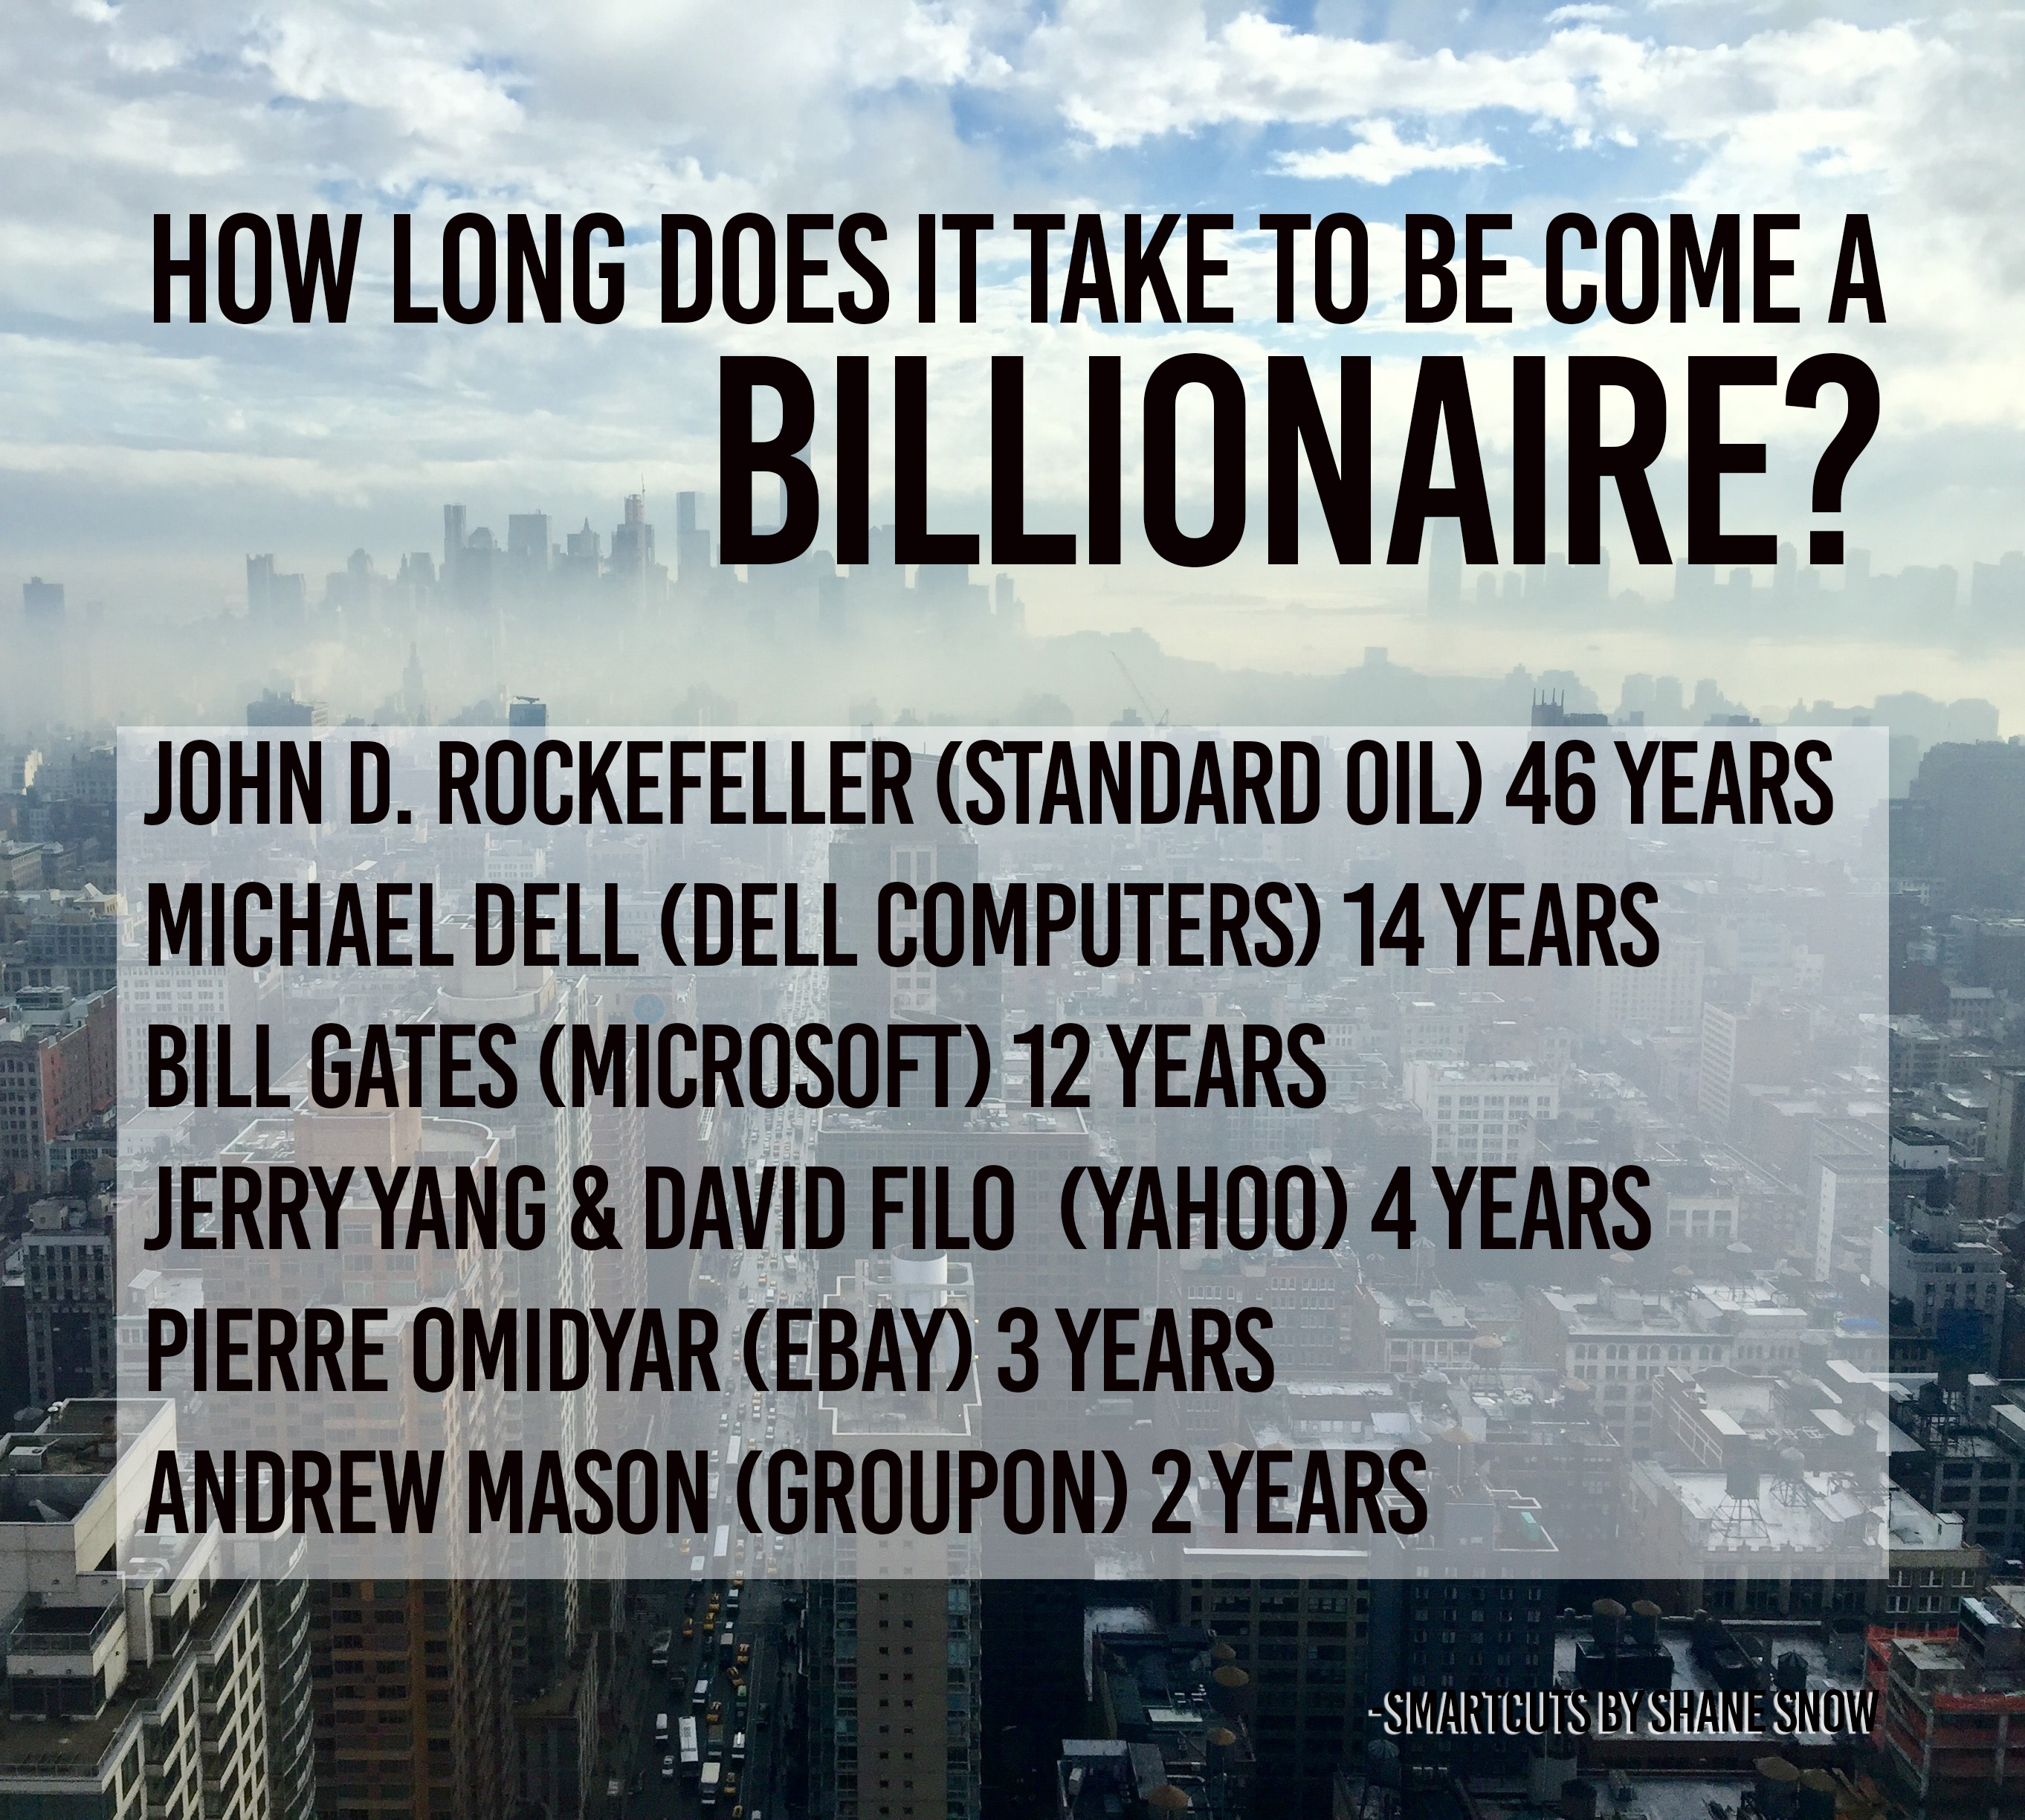 How long does it take to become a billionaire